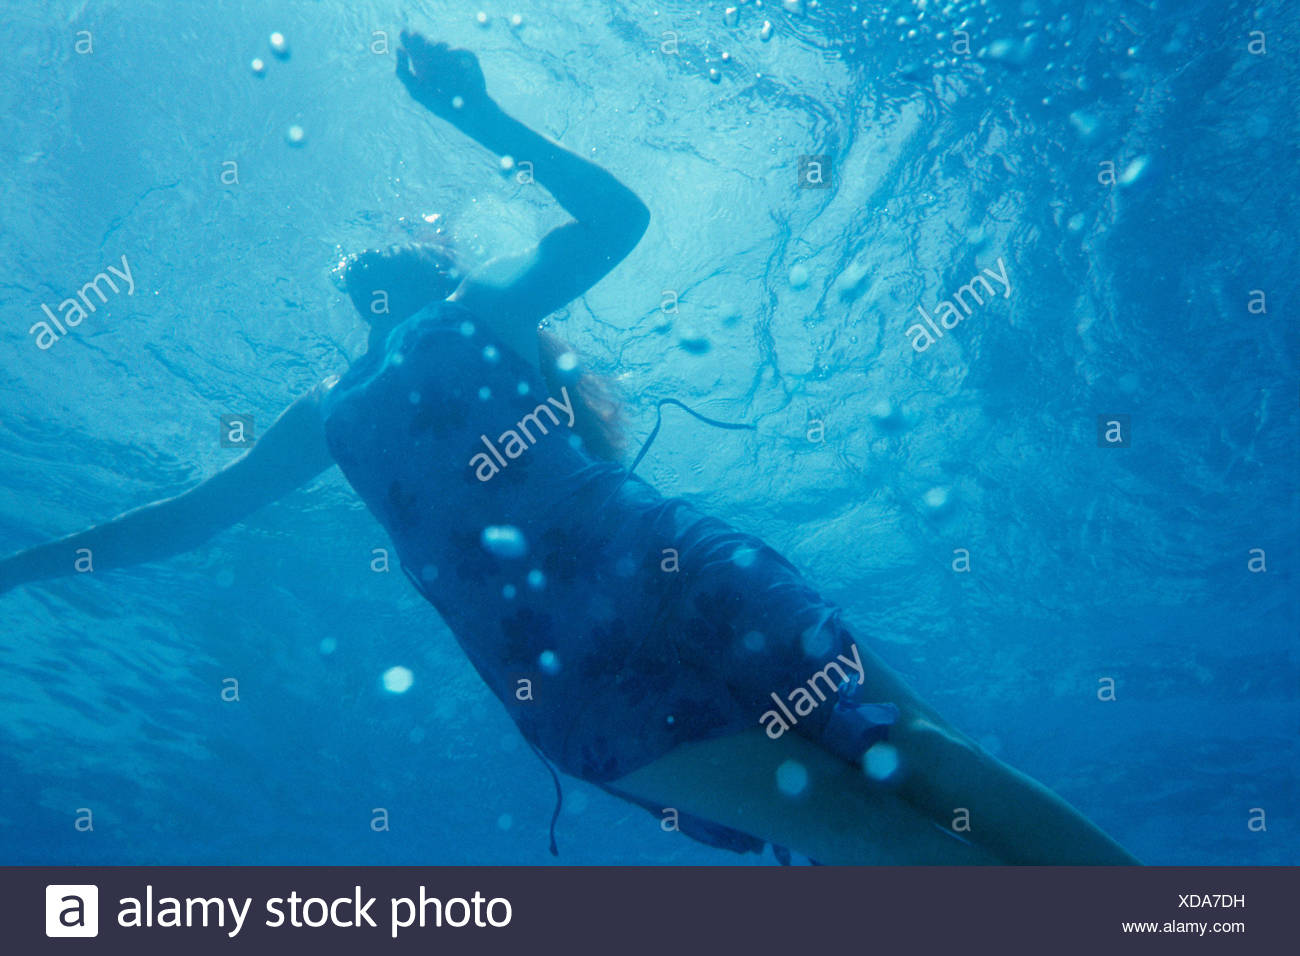 A woman taking a breather - Stock Image